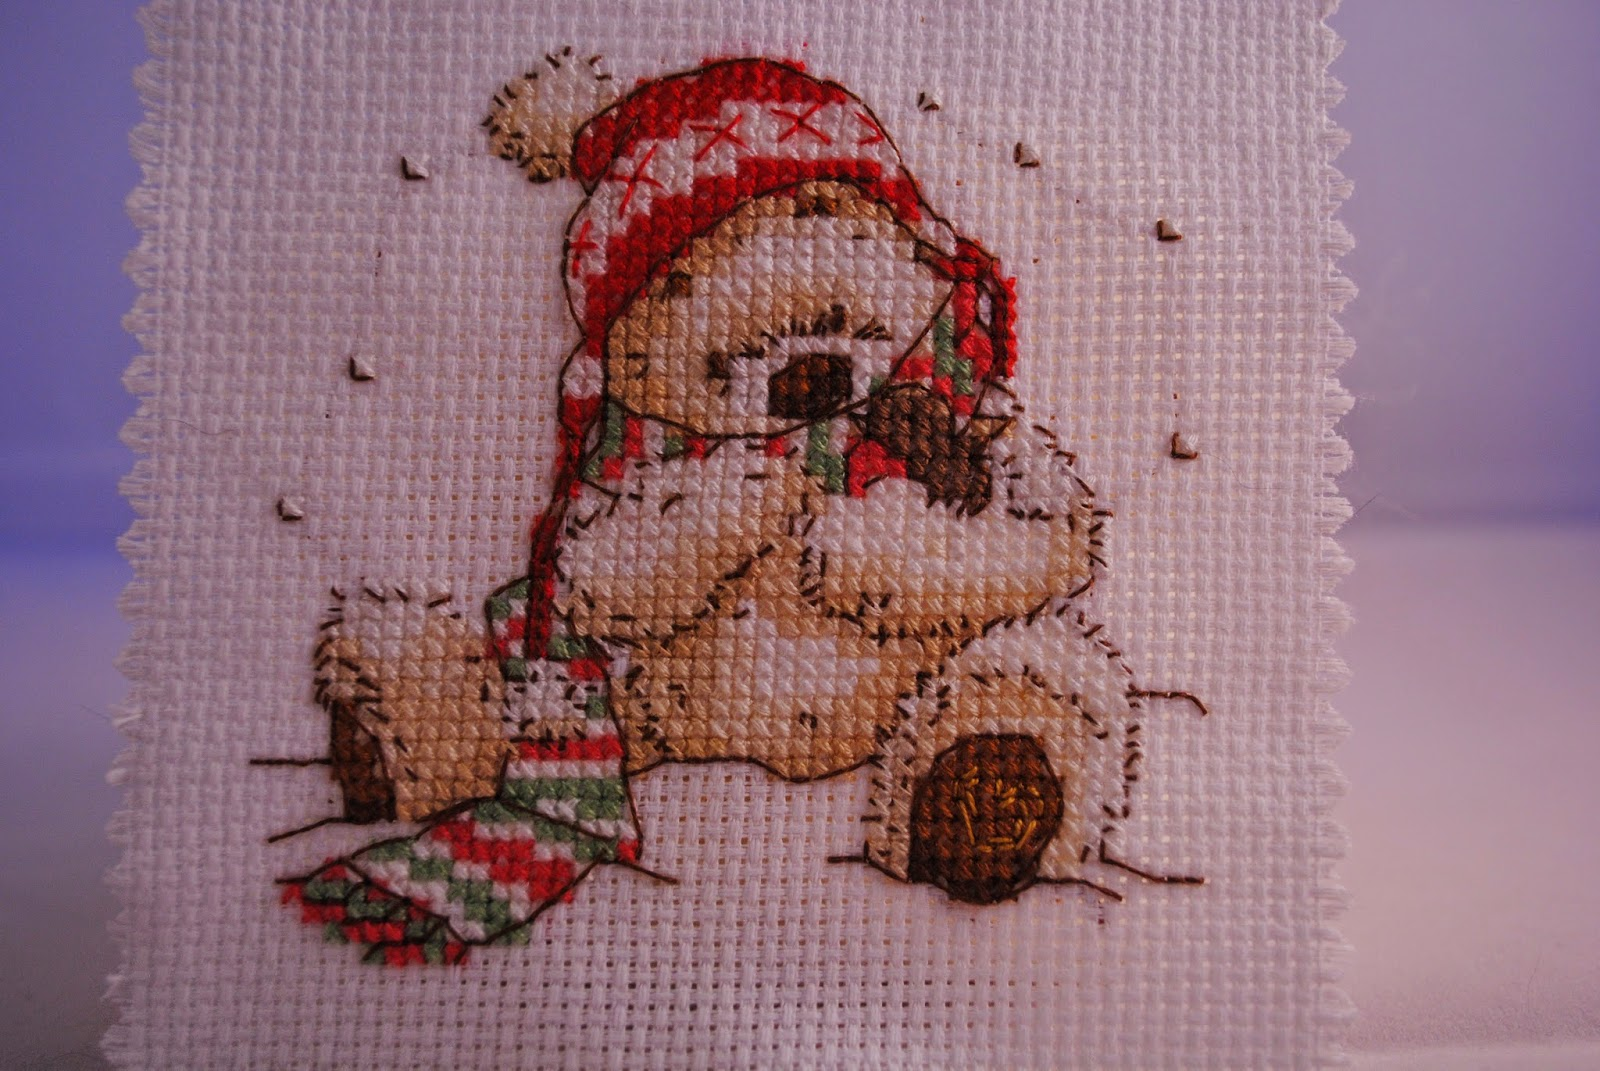 Mini Cross Stitch Ornament. Small Lickle Ted Cross Stitch Finish